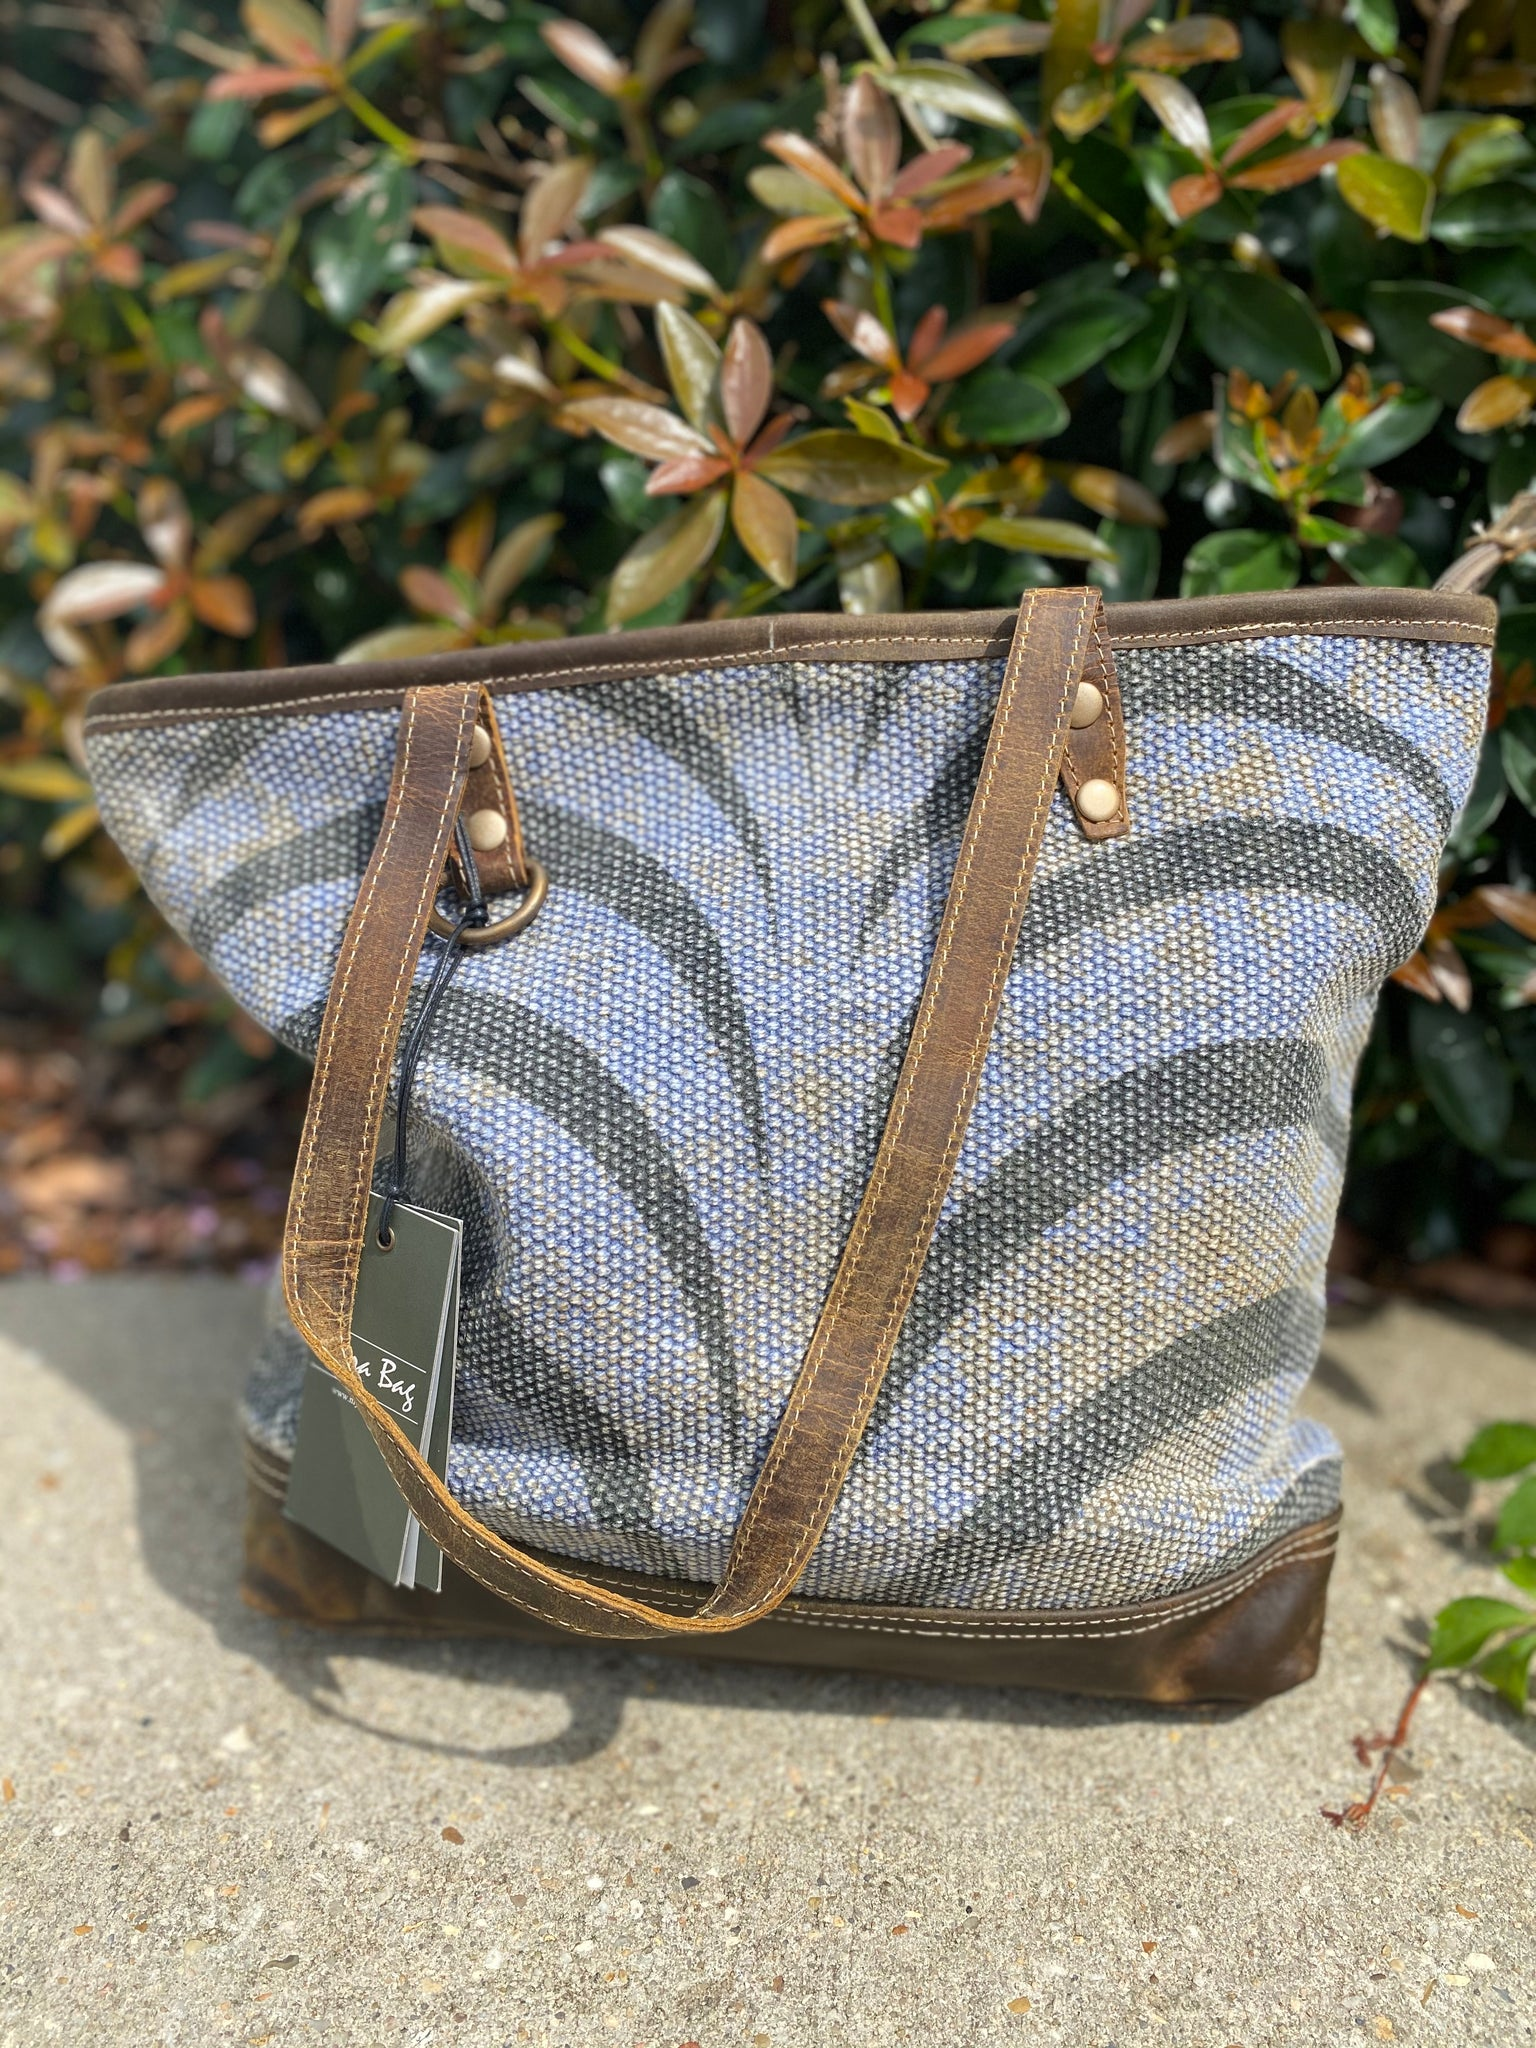 Myra Trendy Affair Tote Bag - Jessi Jayne Boutique